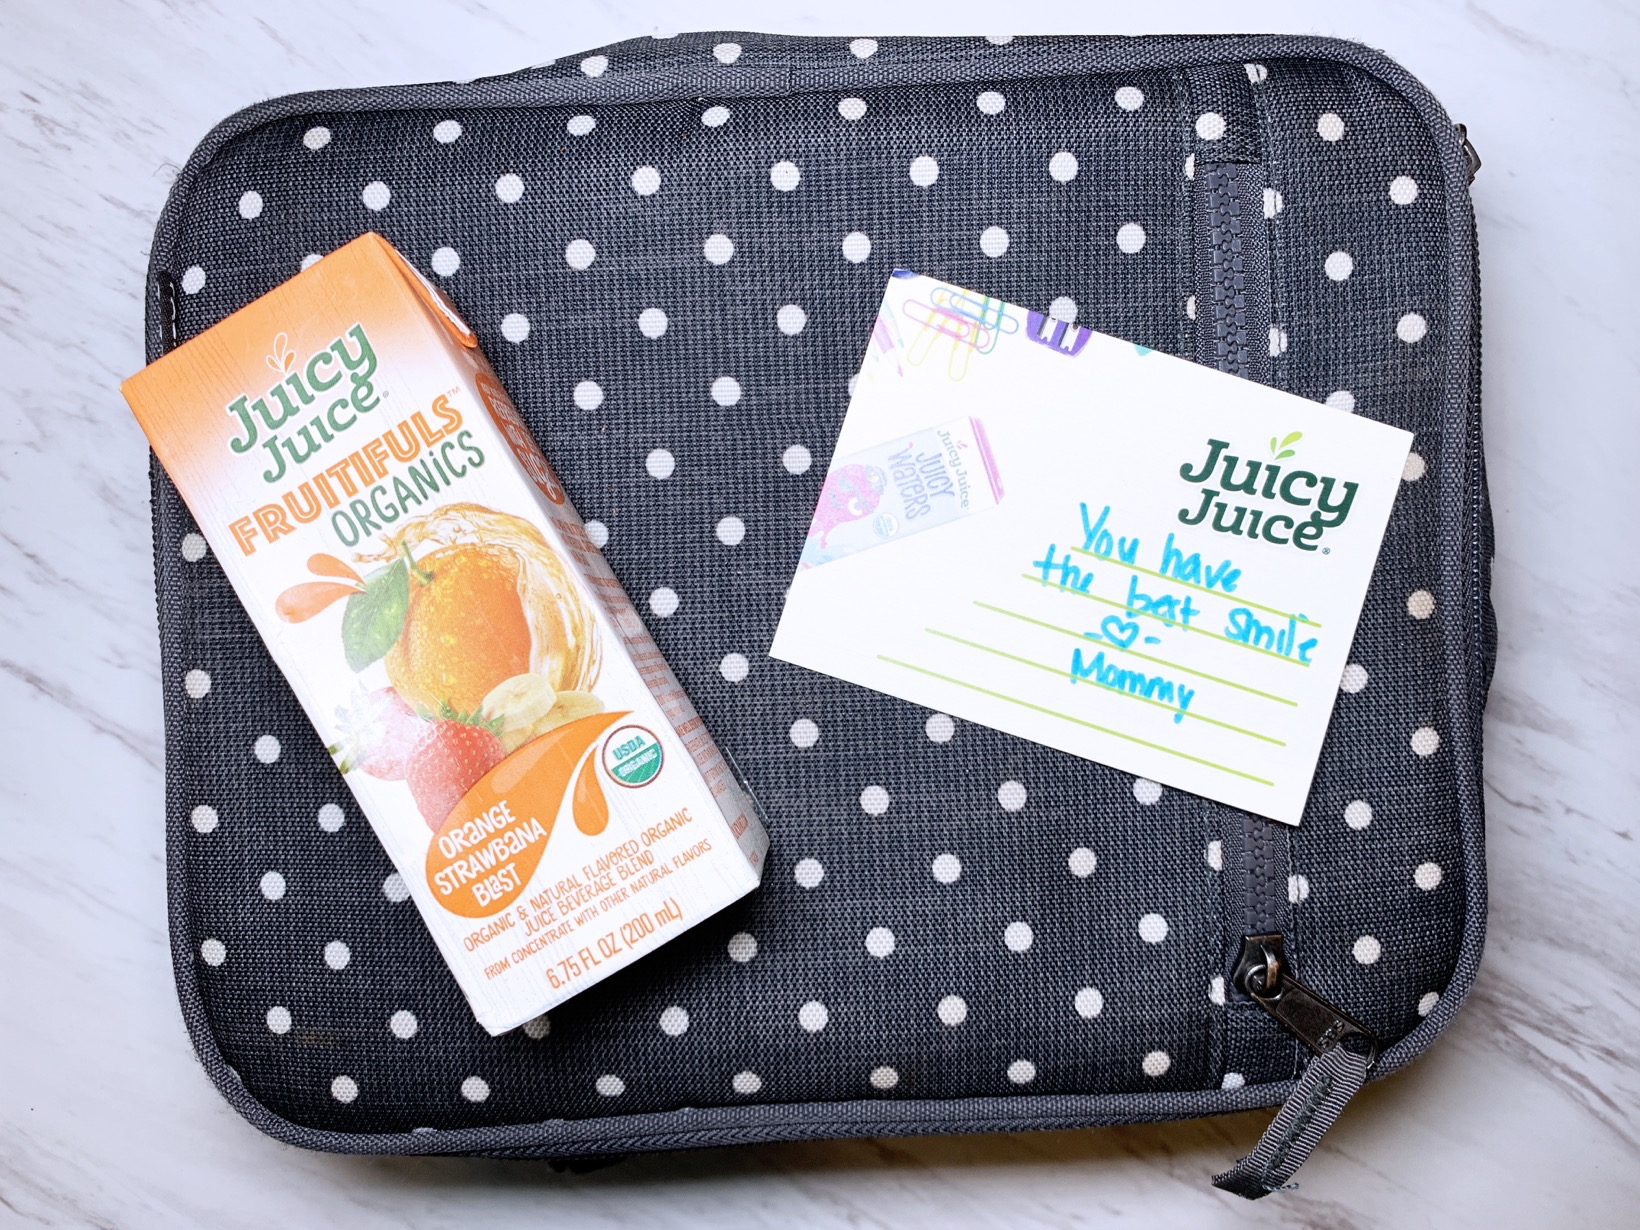 Juicy Juice Fruitifuls Organic and Lunch Notes